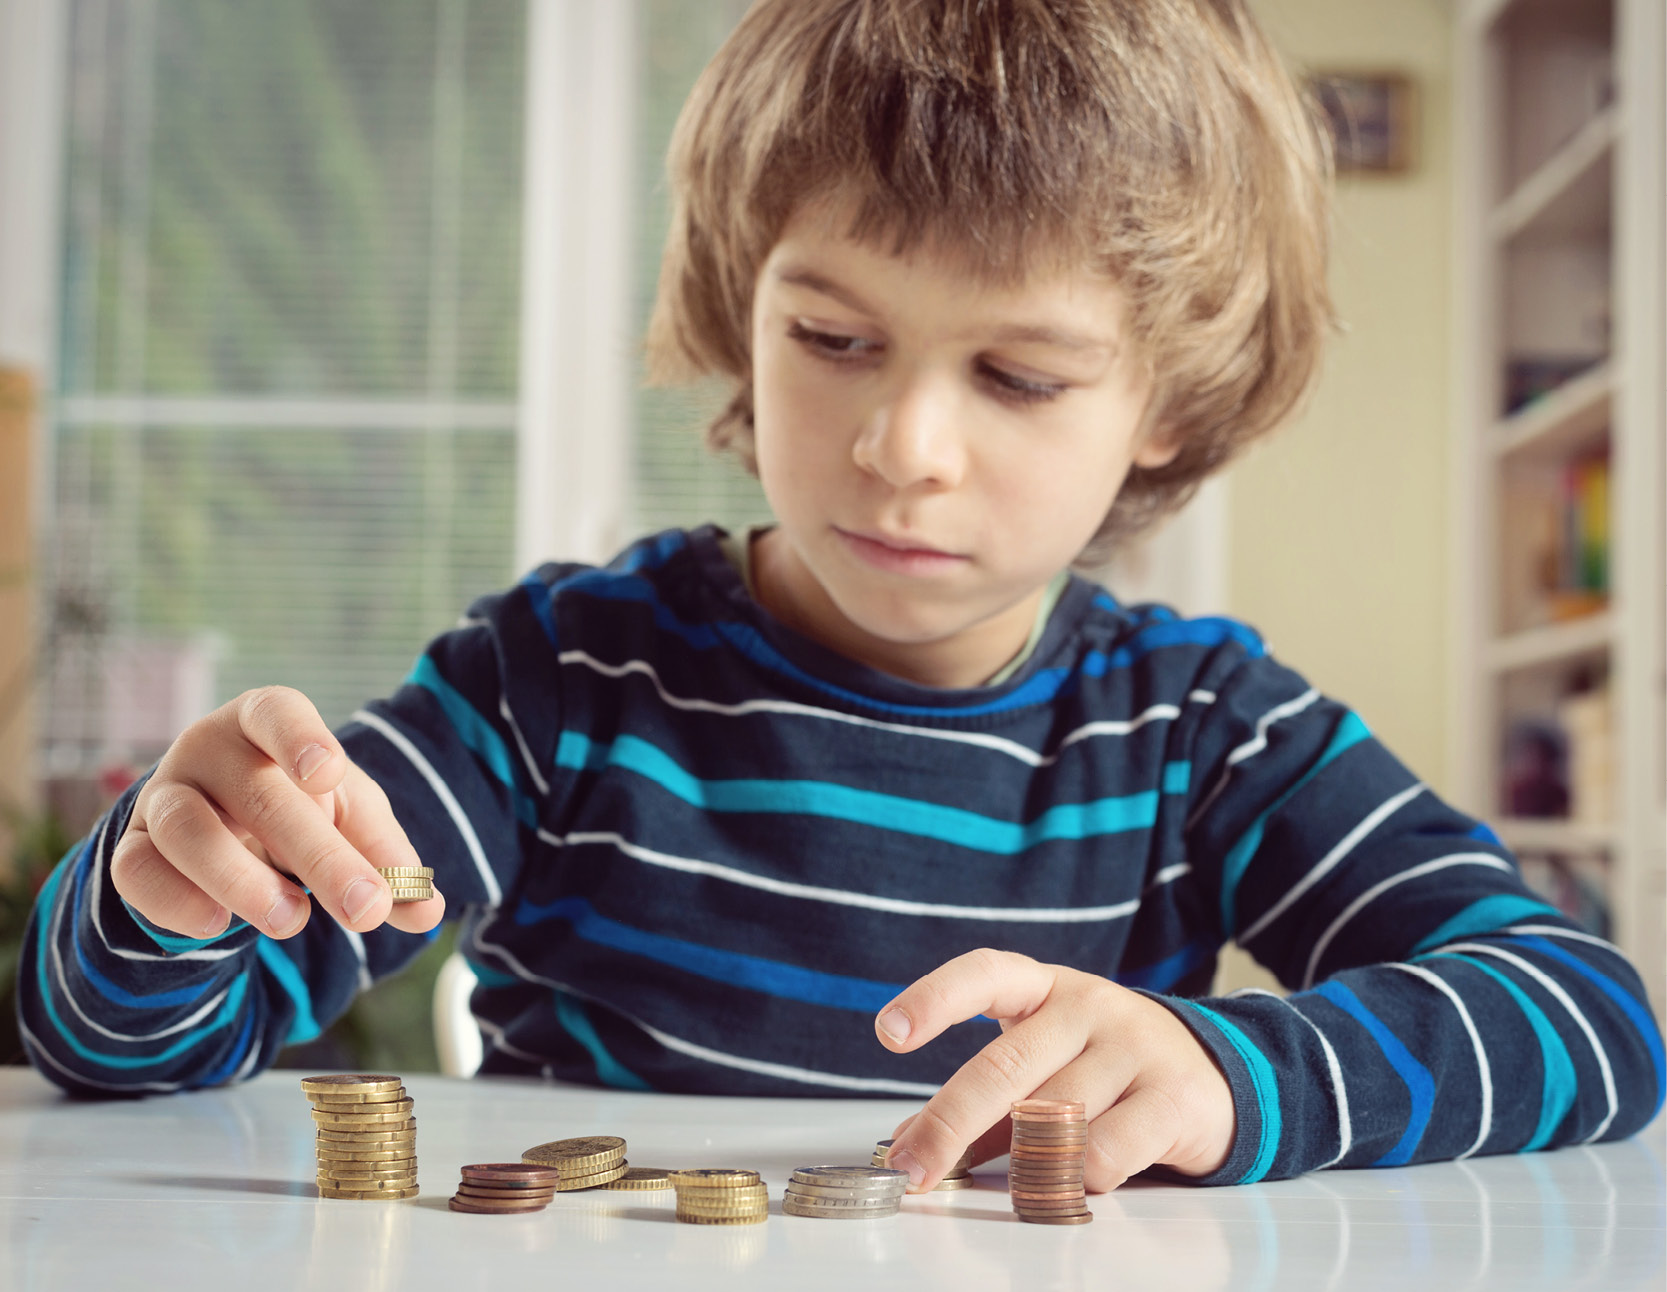 image of boy counting coins